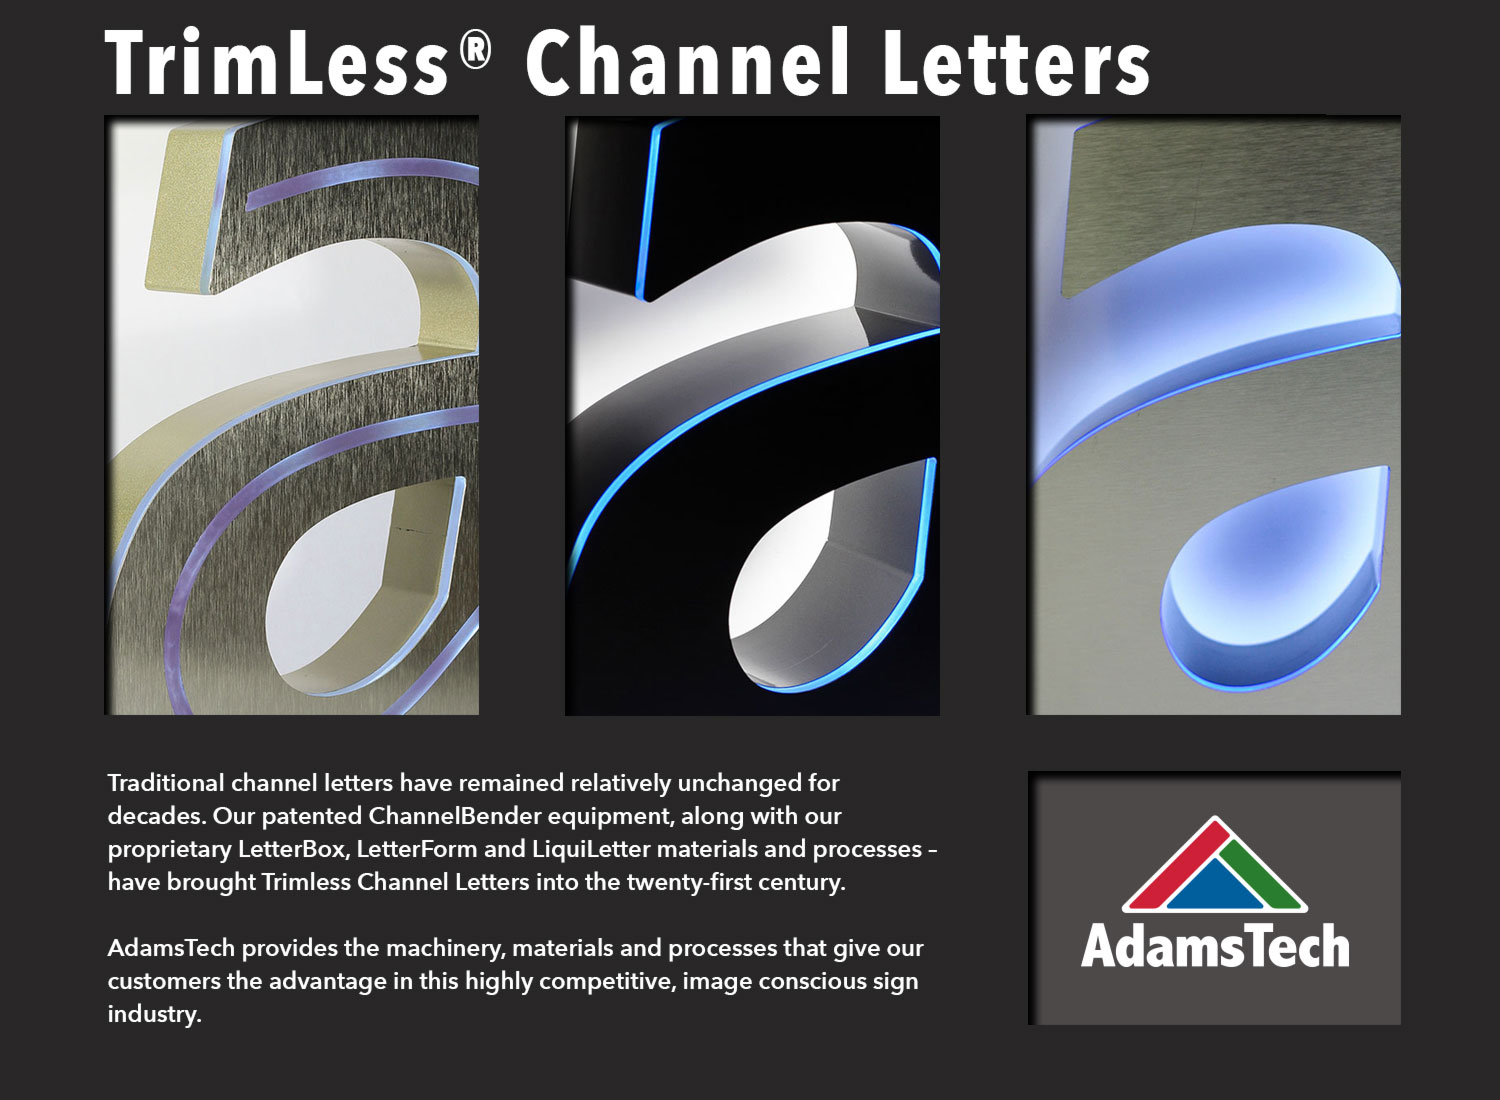 trimless channel letters pictures to pin on pinterest With trimless channel letters